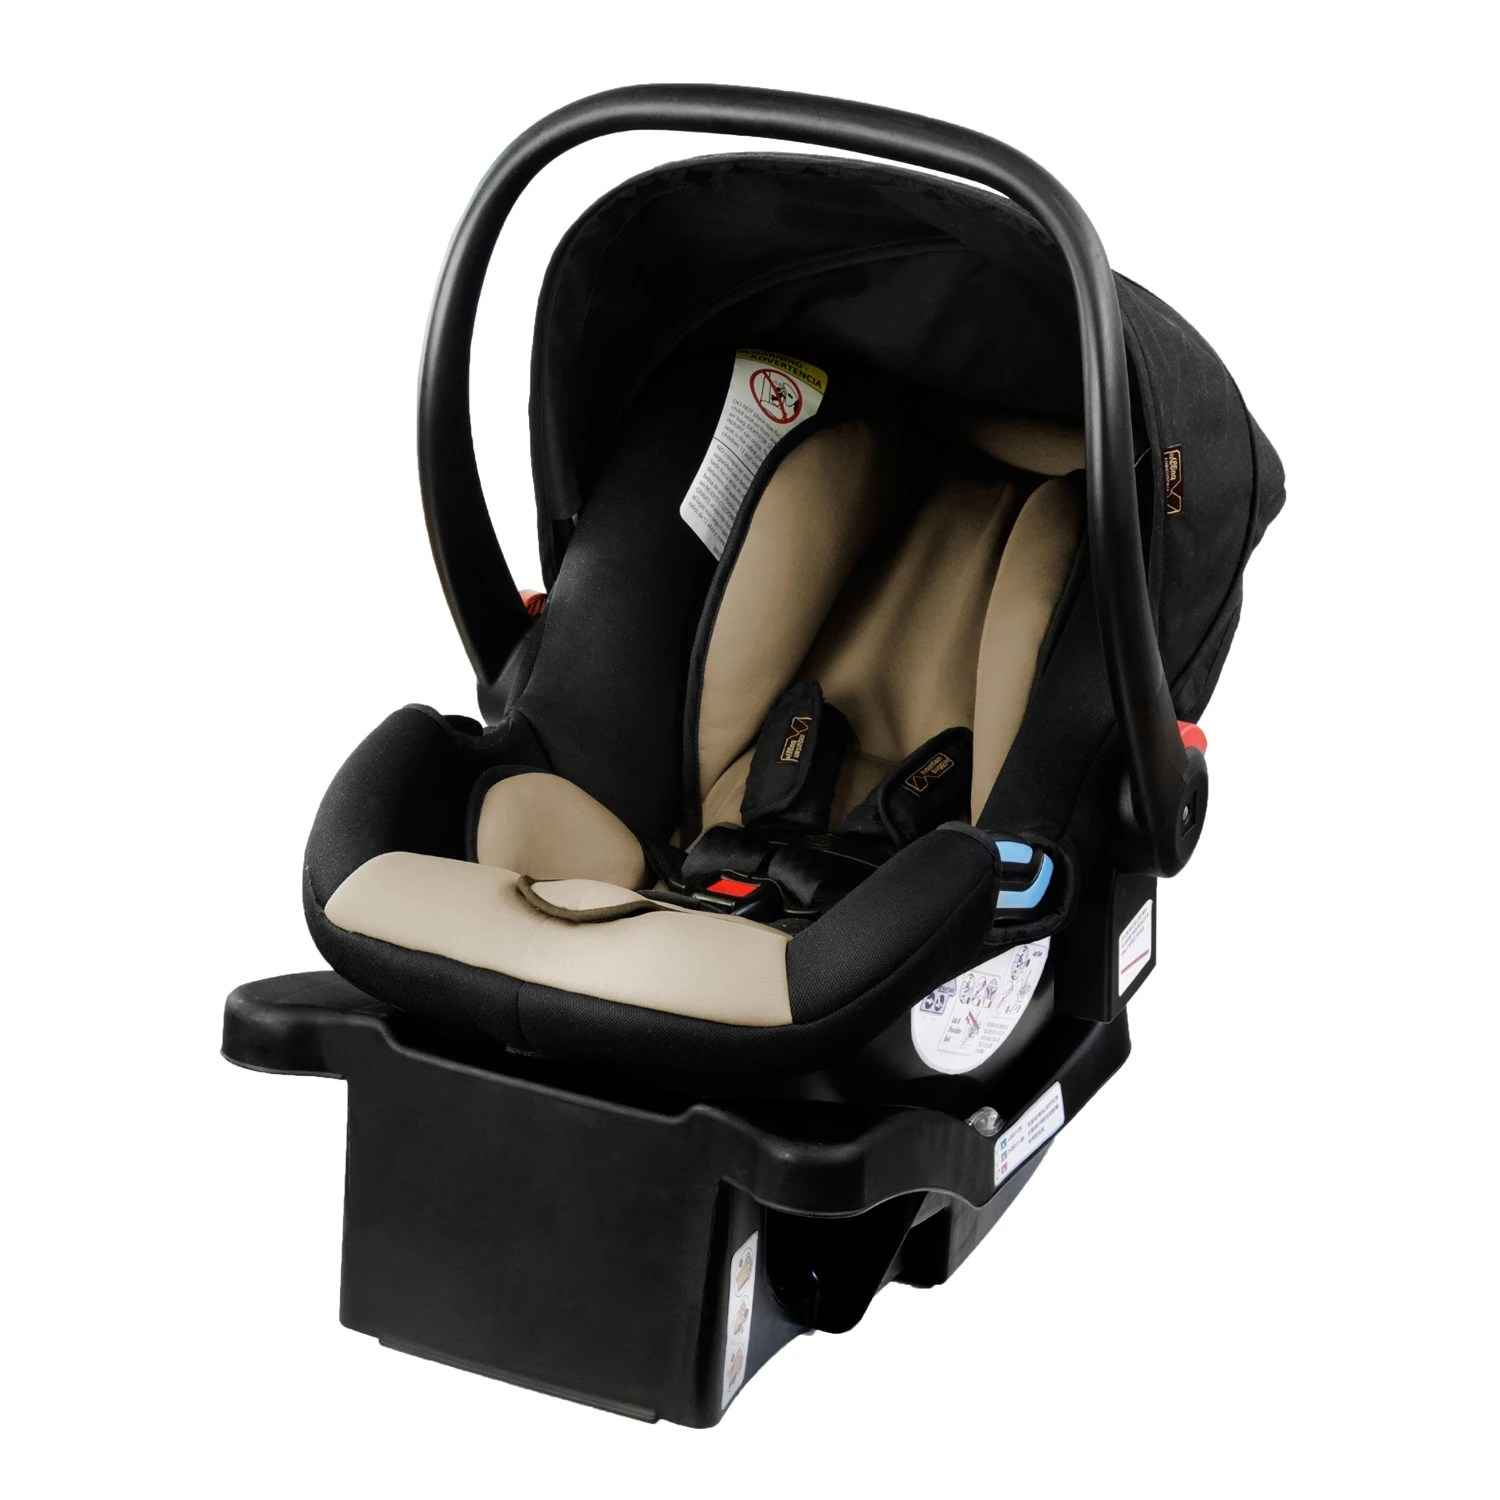 Mountain Buggy Car Seat Installation Mountain Buggy Protect Rear Facing Infant Car Seat